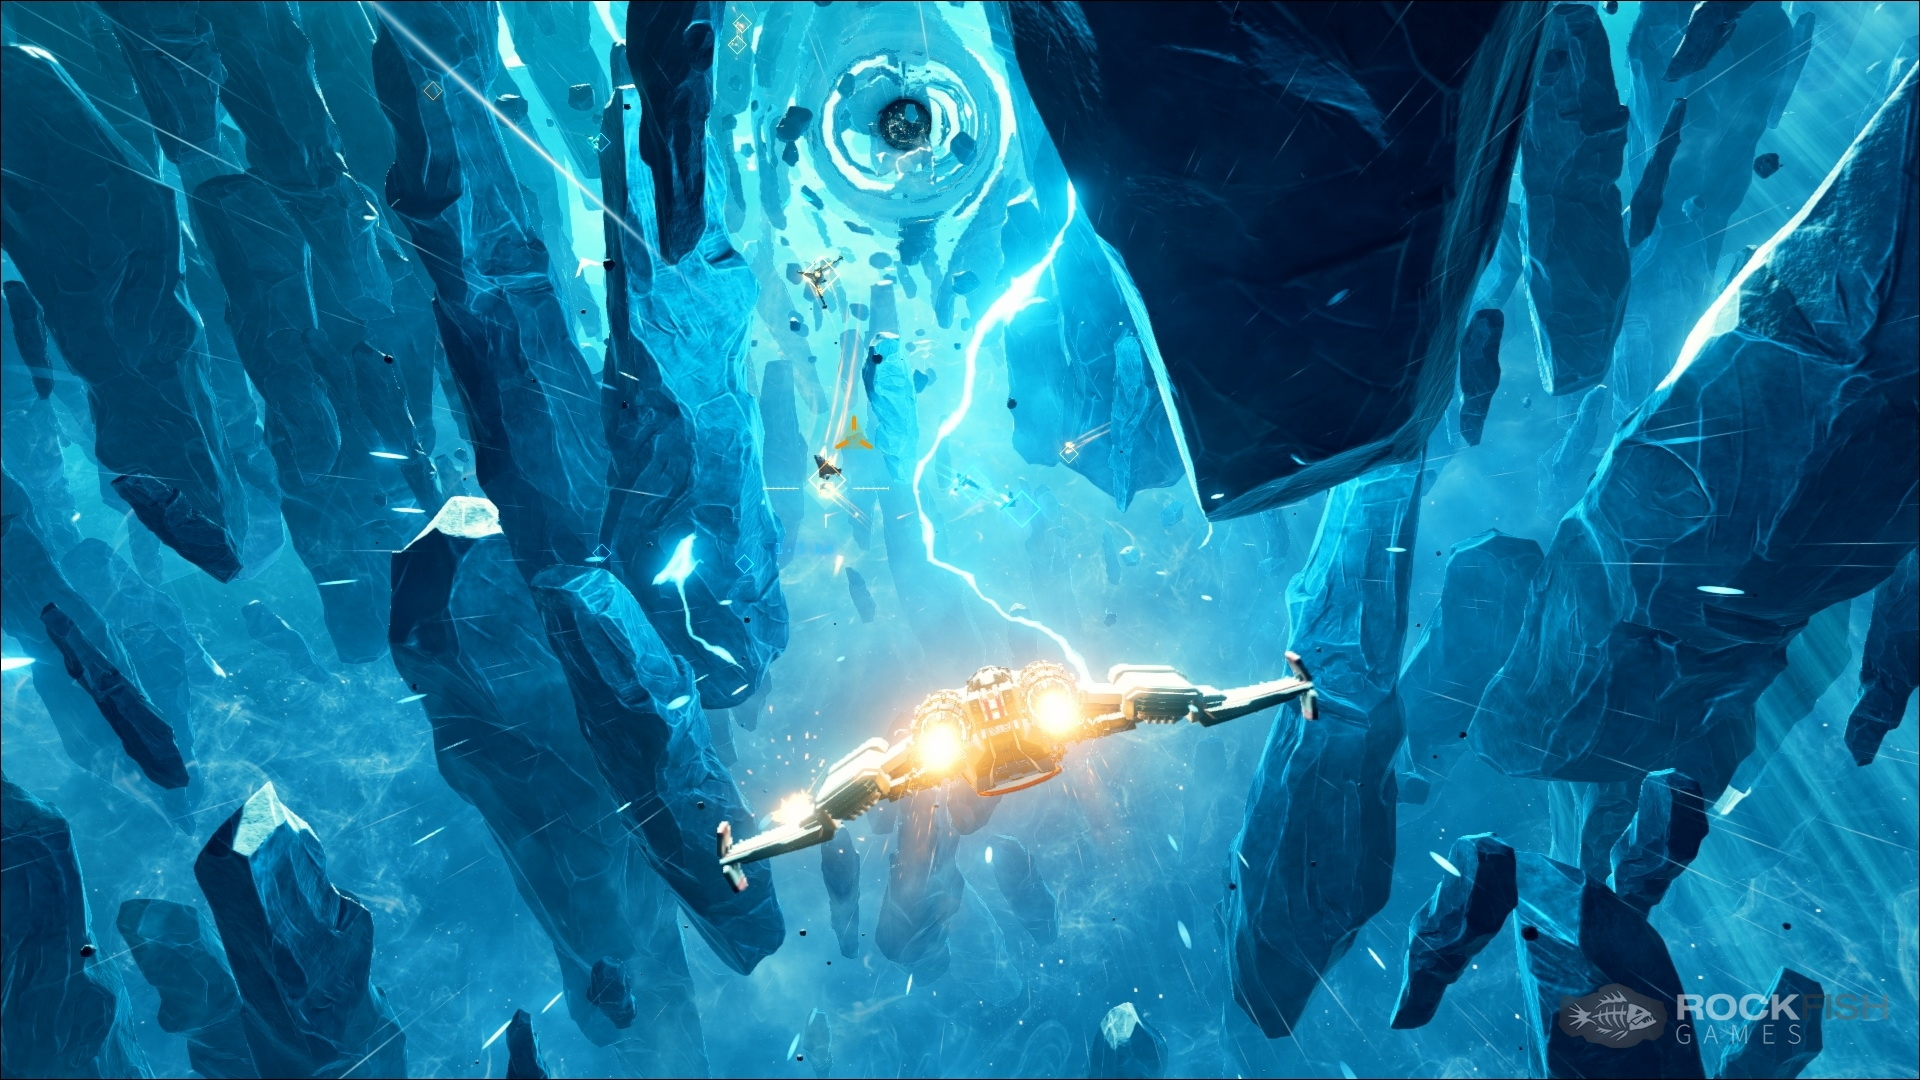 'Everspace' Promises Dazzling Space Combat, Heading for Kickstarter Success with VR Support